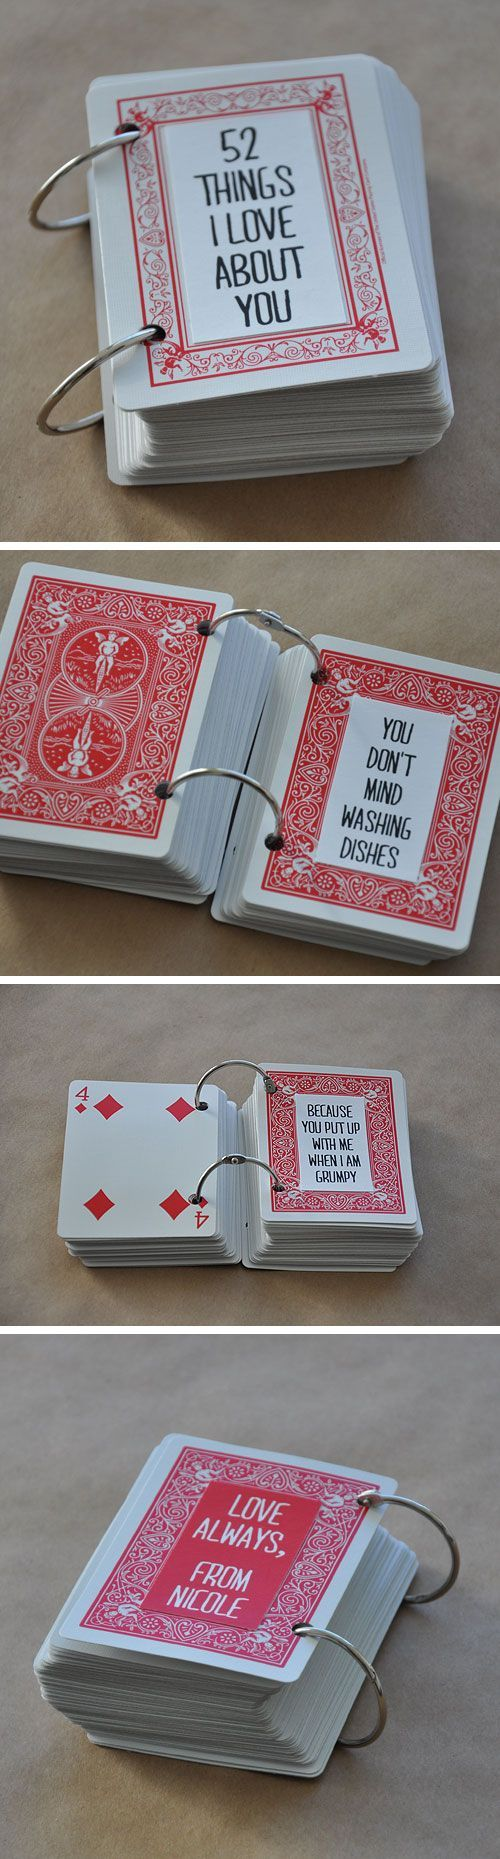 """A Card Deck of """"I Love You's""""   This DIY is not only super sentimental, but it's compact enough that it can be easily mailed for Valentine's Day."""